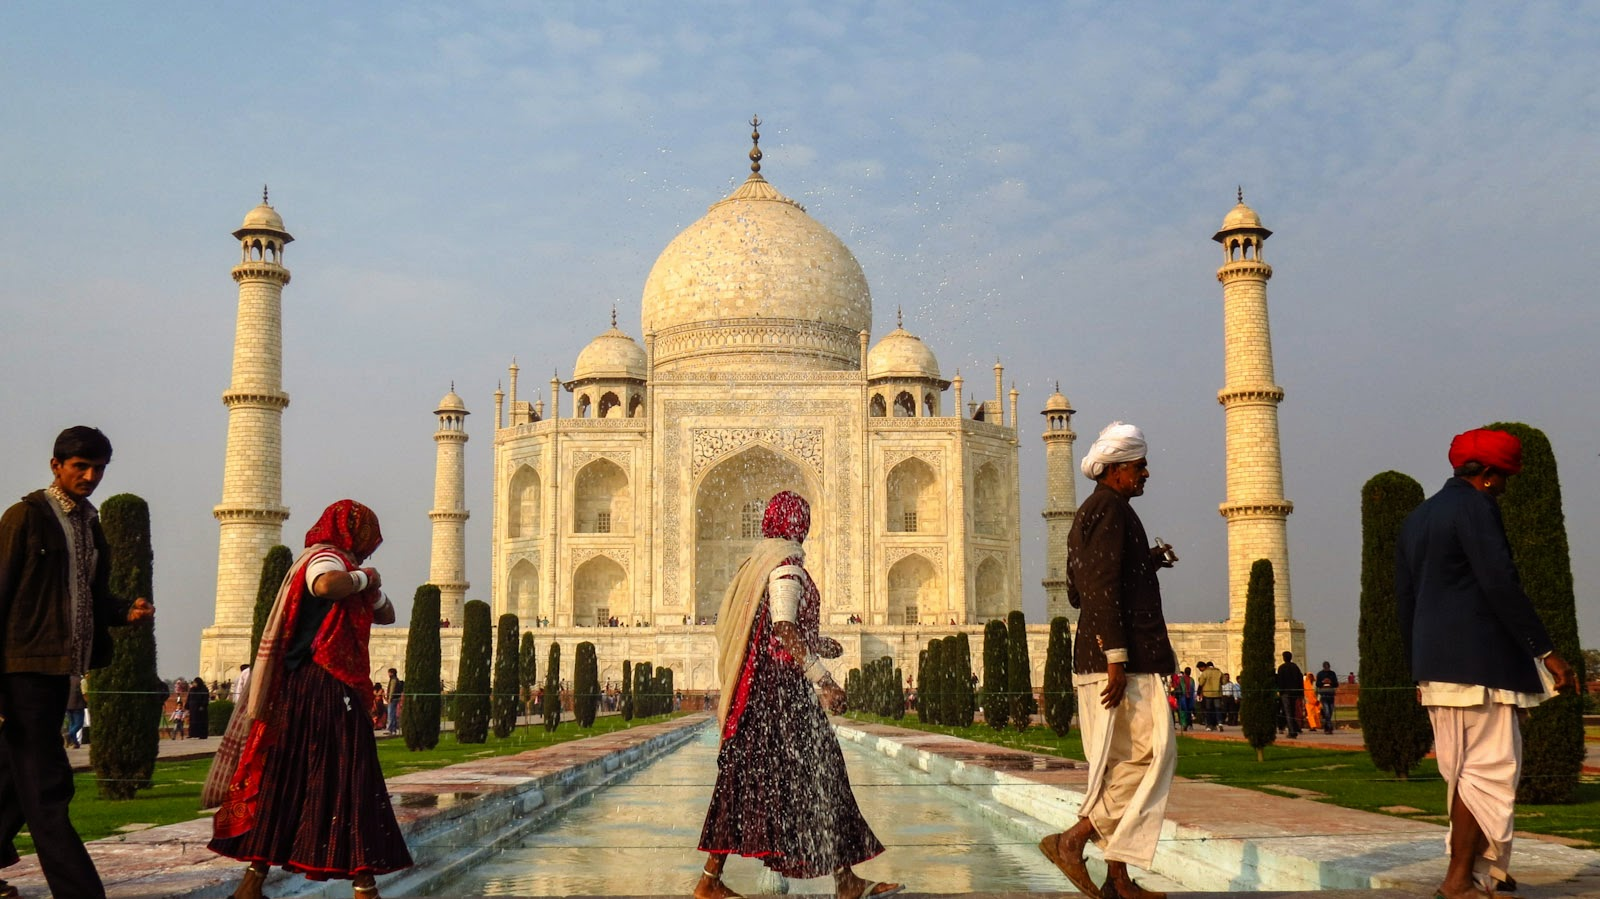 Taj Mahal Images - Islamic Finder - Lectures Khutbas